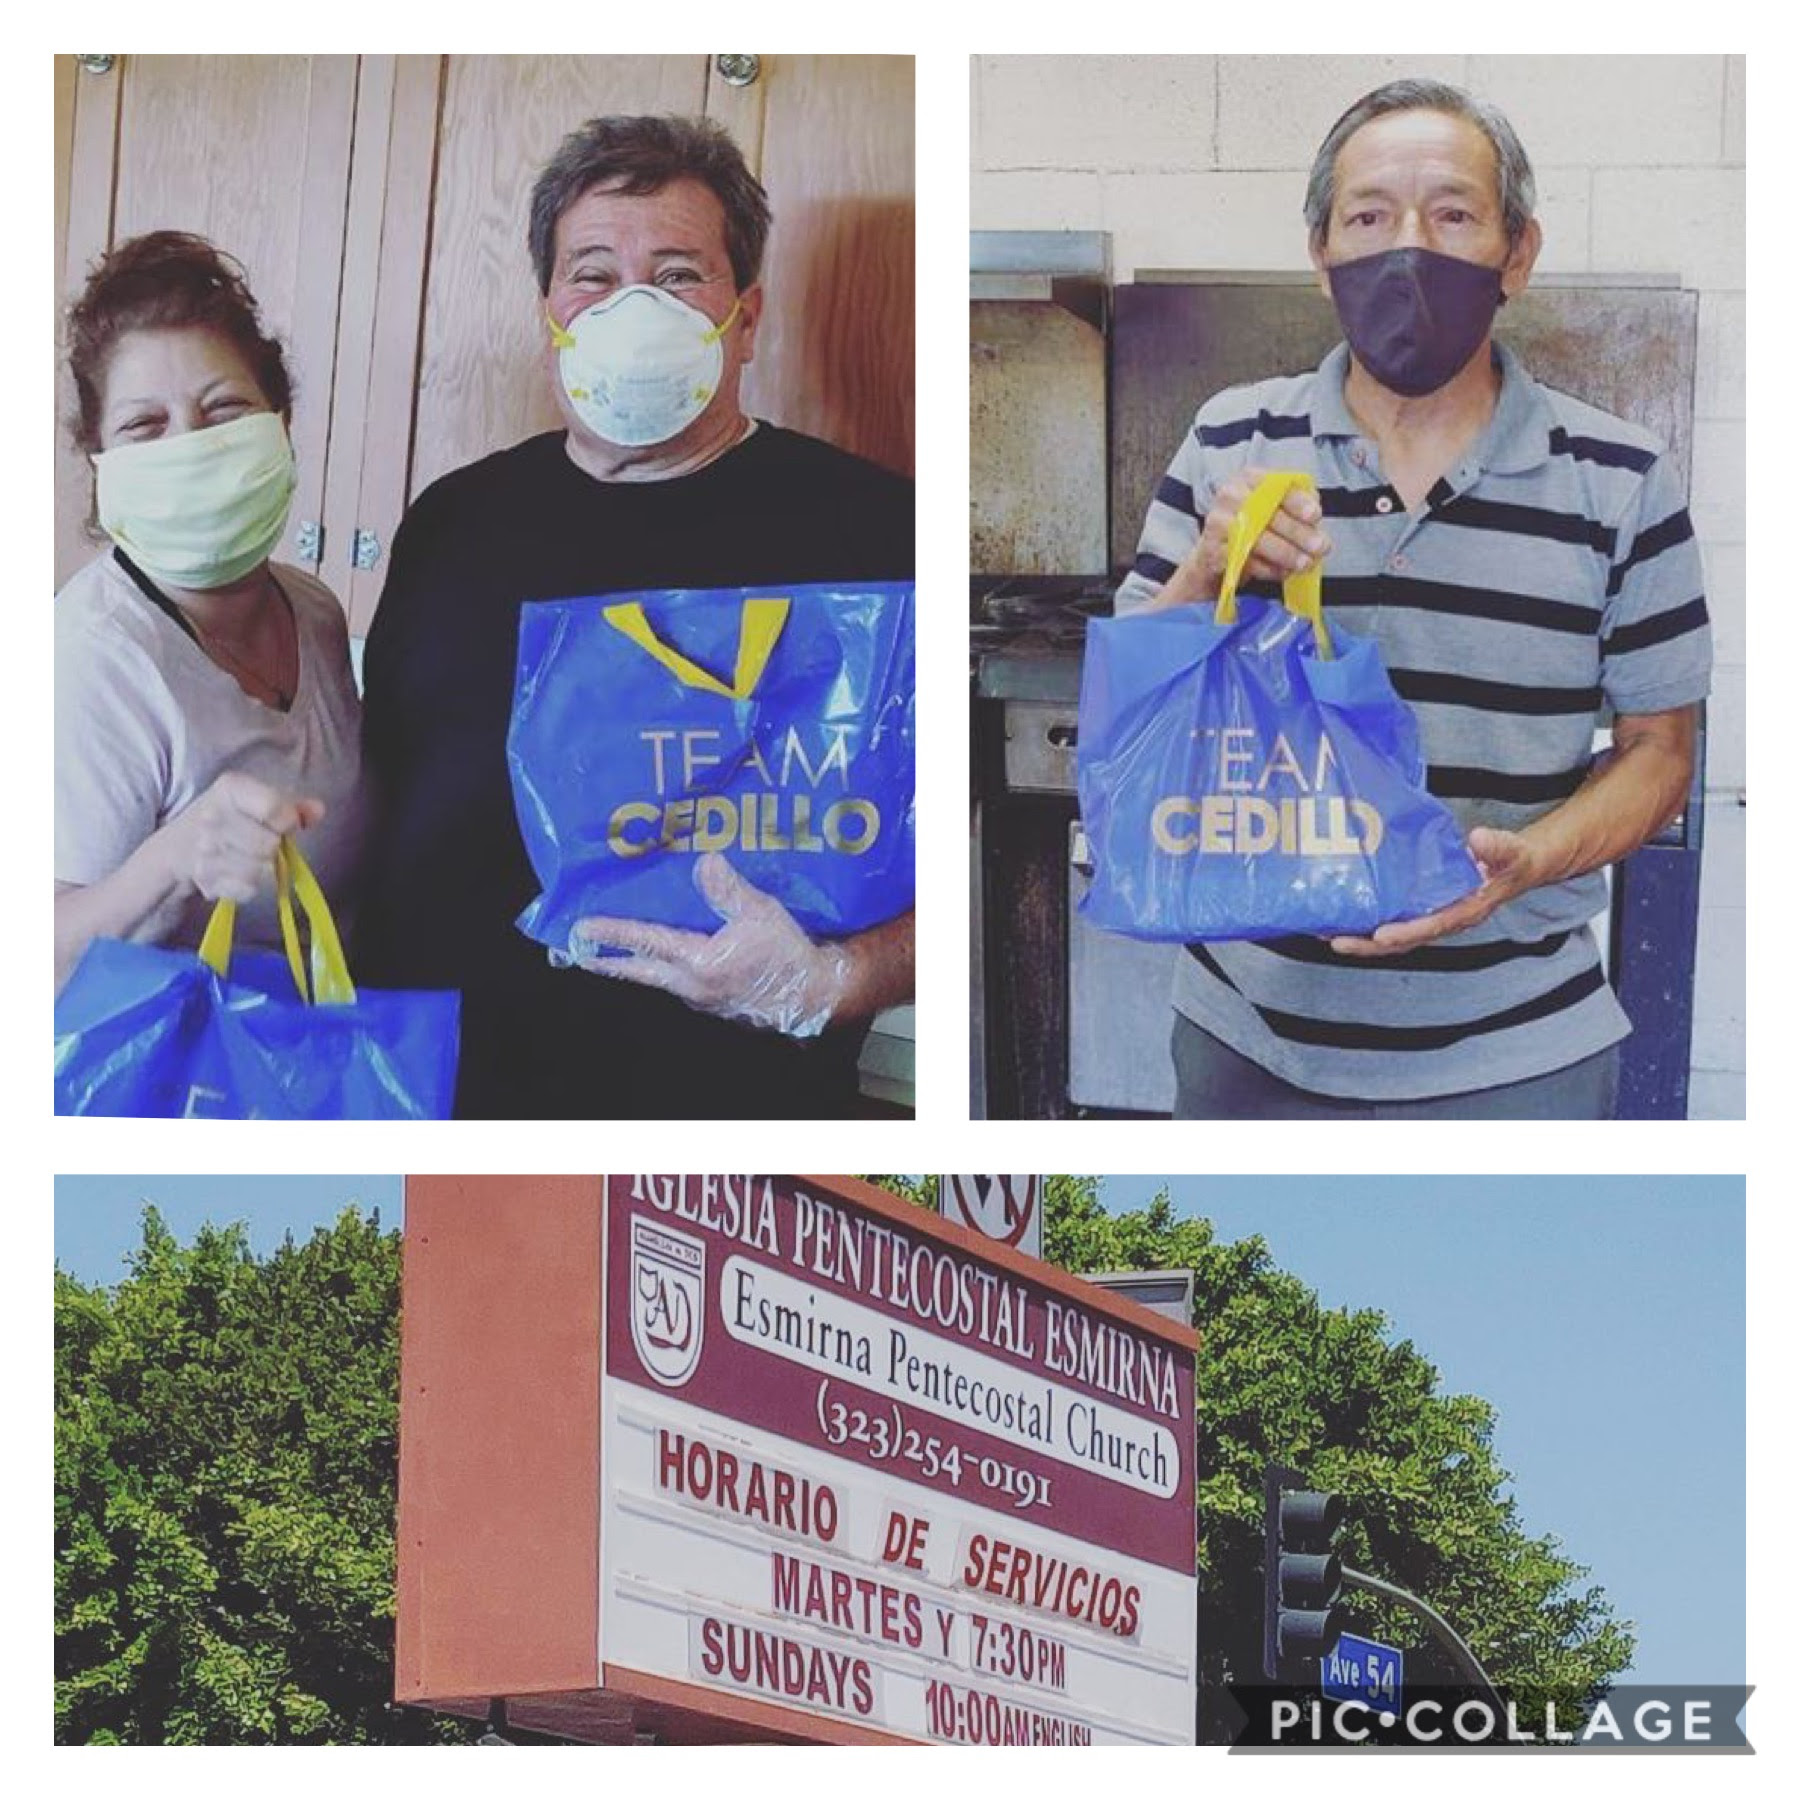 St. Vincent food bank and Iglesia Pentacastal food bank in Highland Park received meals from Chico's Restaurant 5-22-2020 COLLAGE